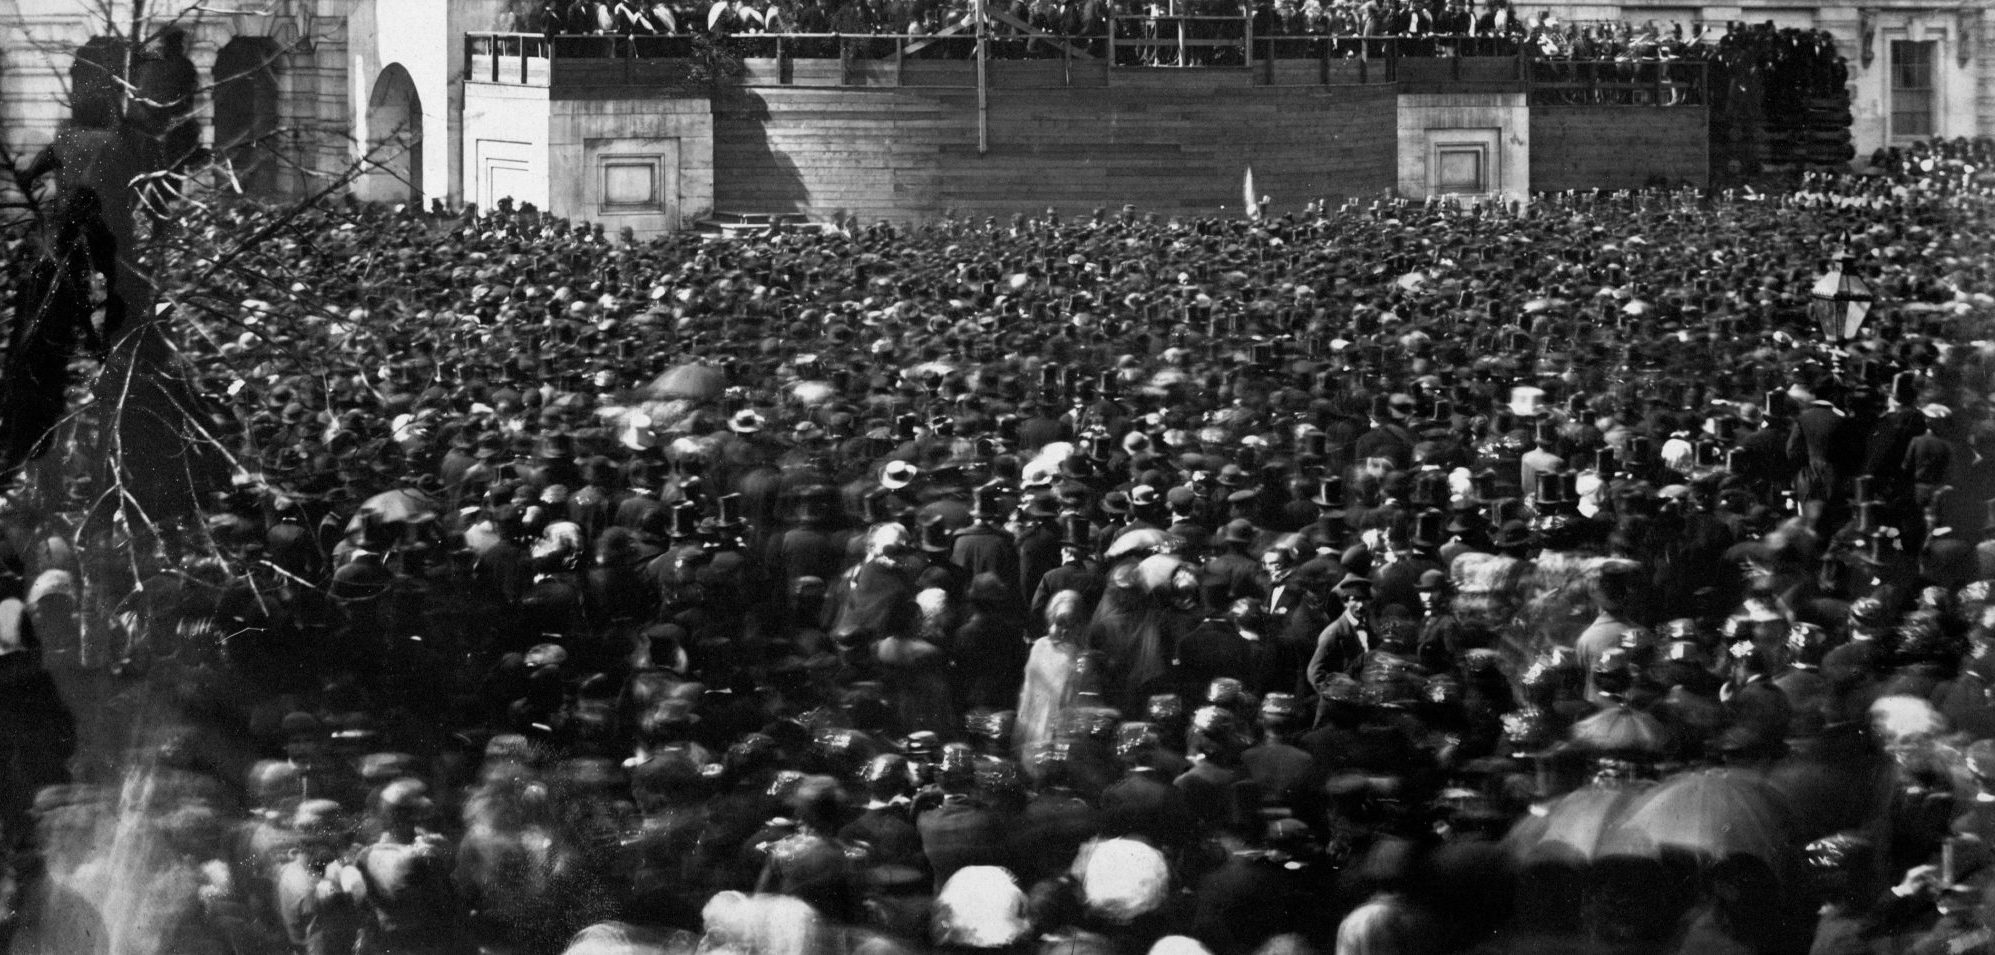 Crowd at Lincoln's First Inauguration